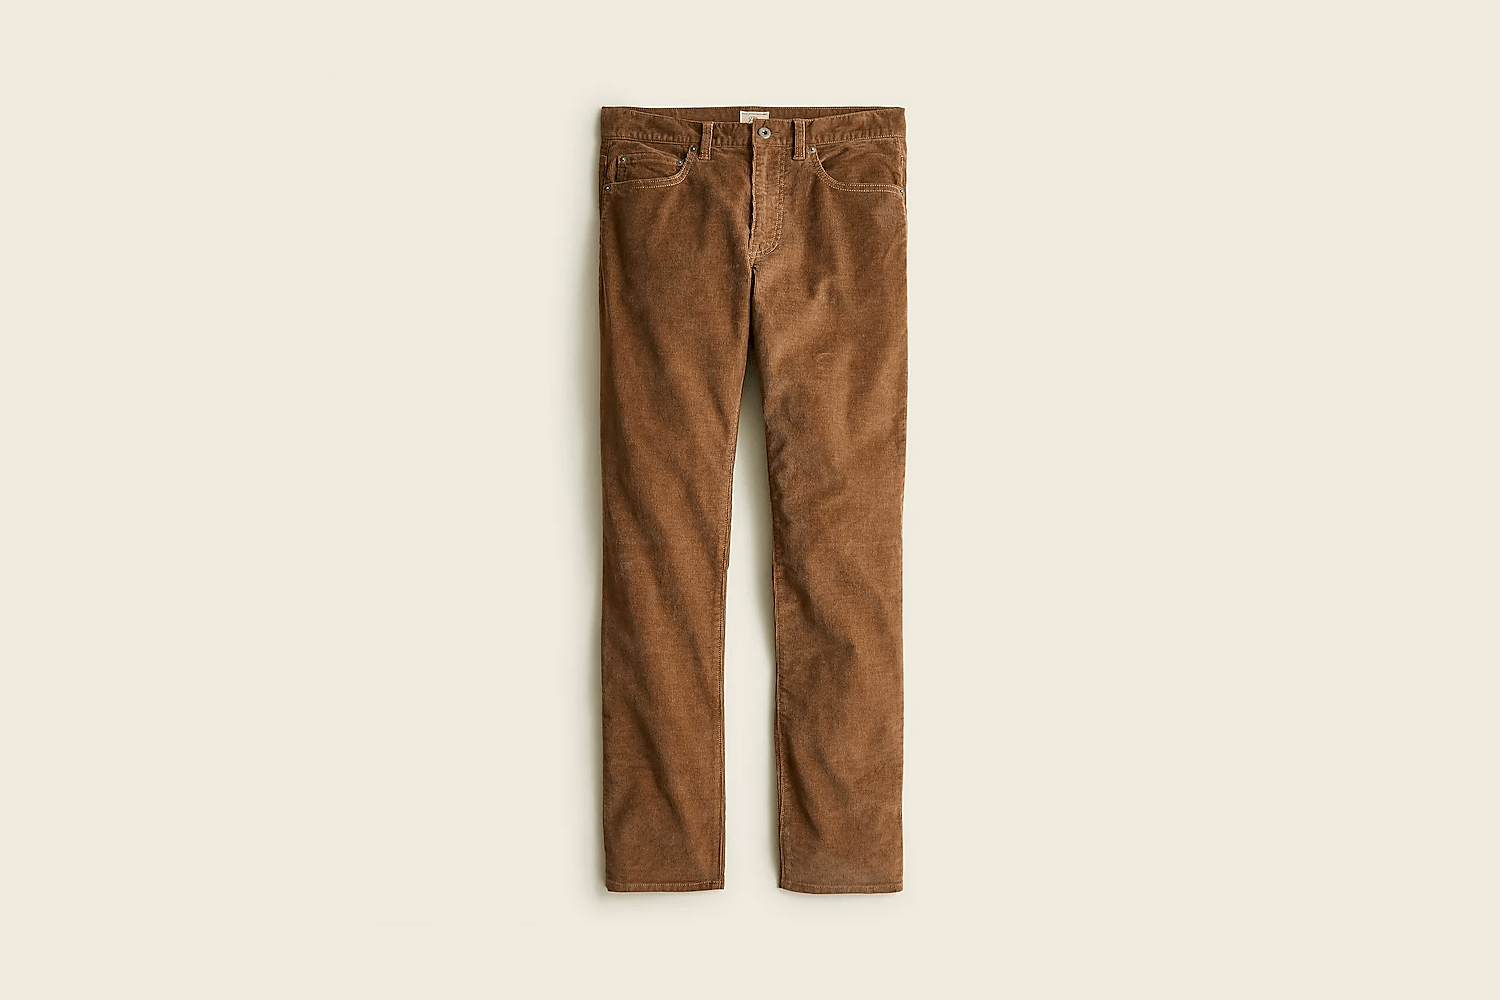 770™ Straight-fit pant in corduroy